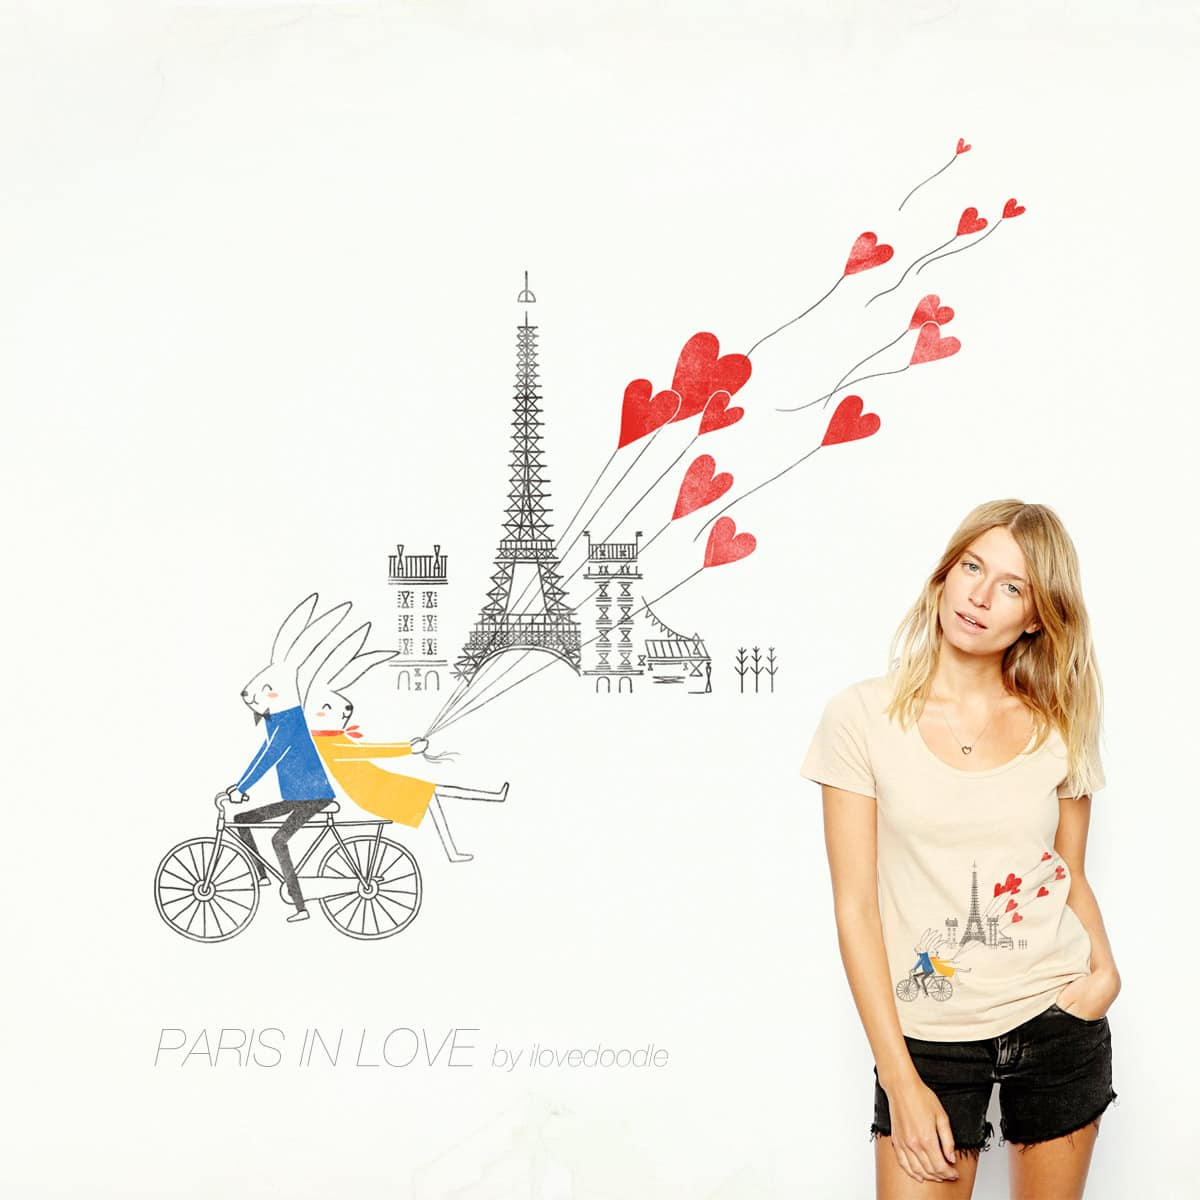 Paris in love by ilovedoodle on Threadless